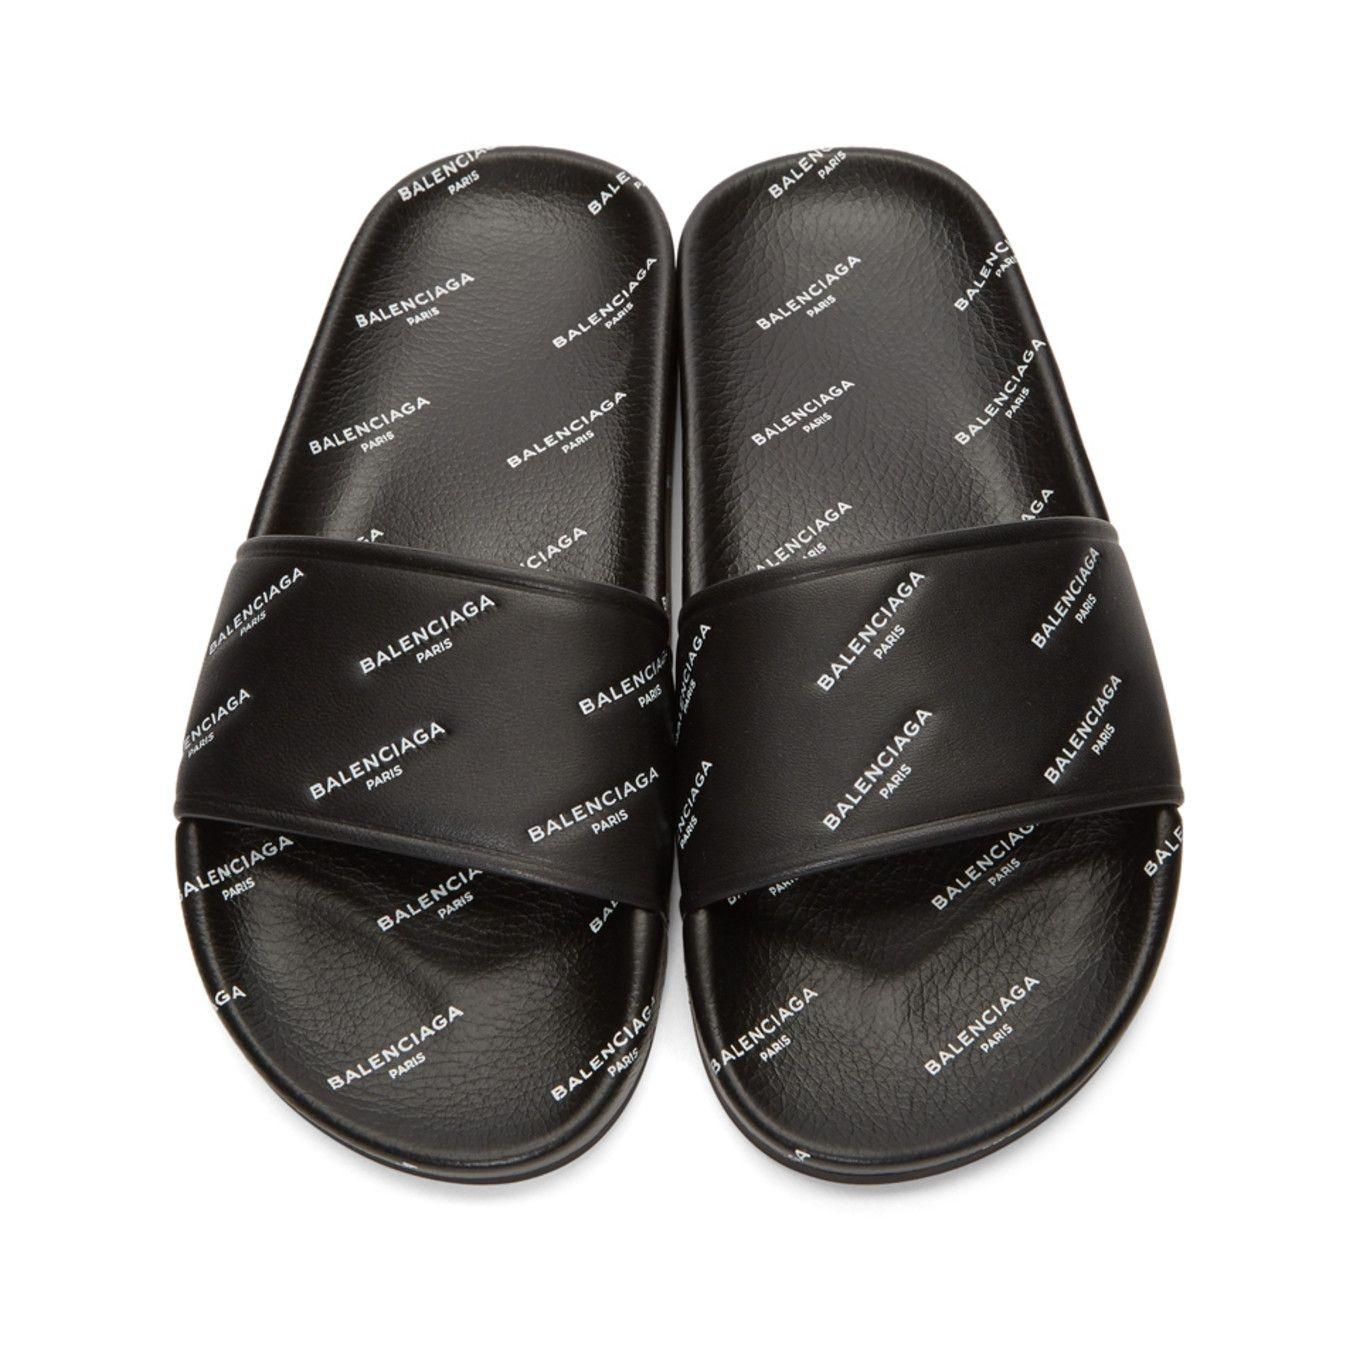 Balenciaga Black Logo All Over Slides Womans Sandals Size EU 40 (Approx. US 10) Regular (M, B)